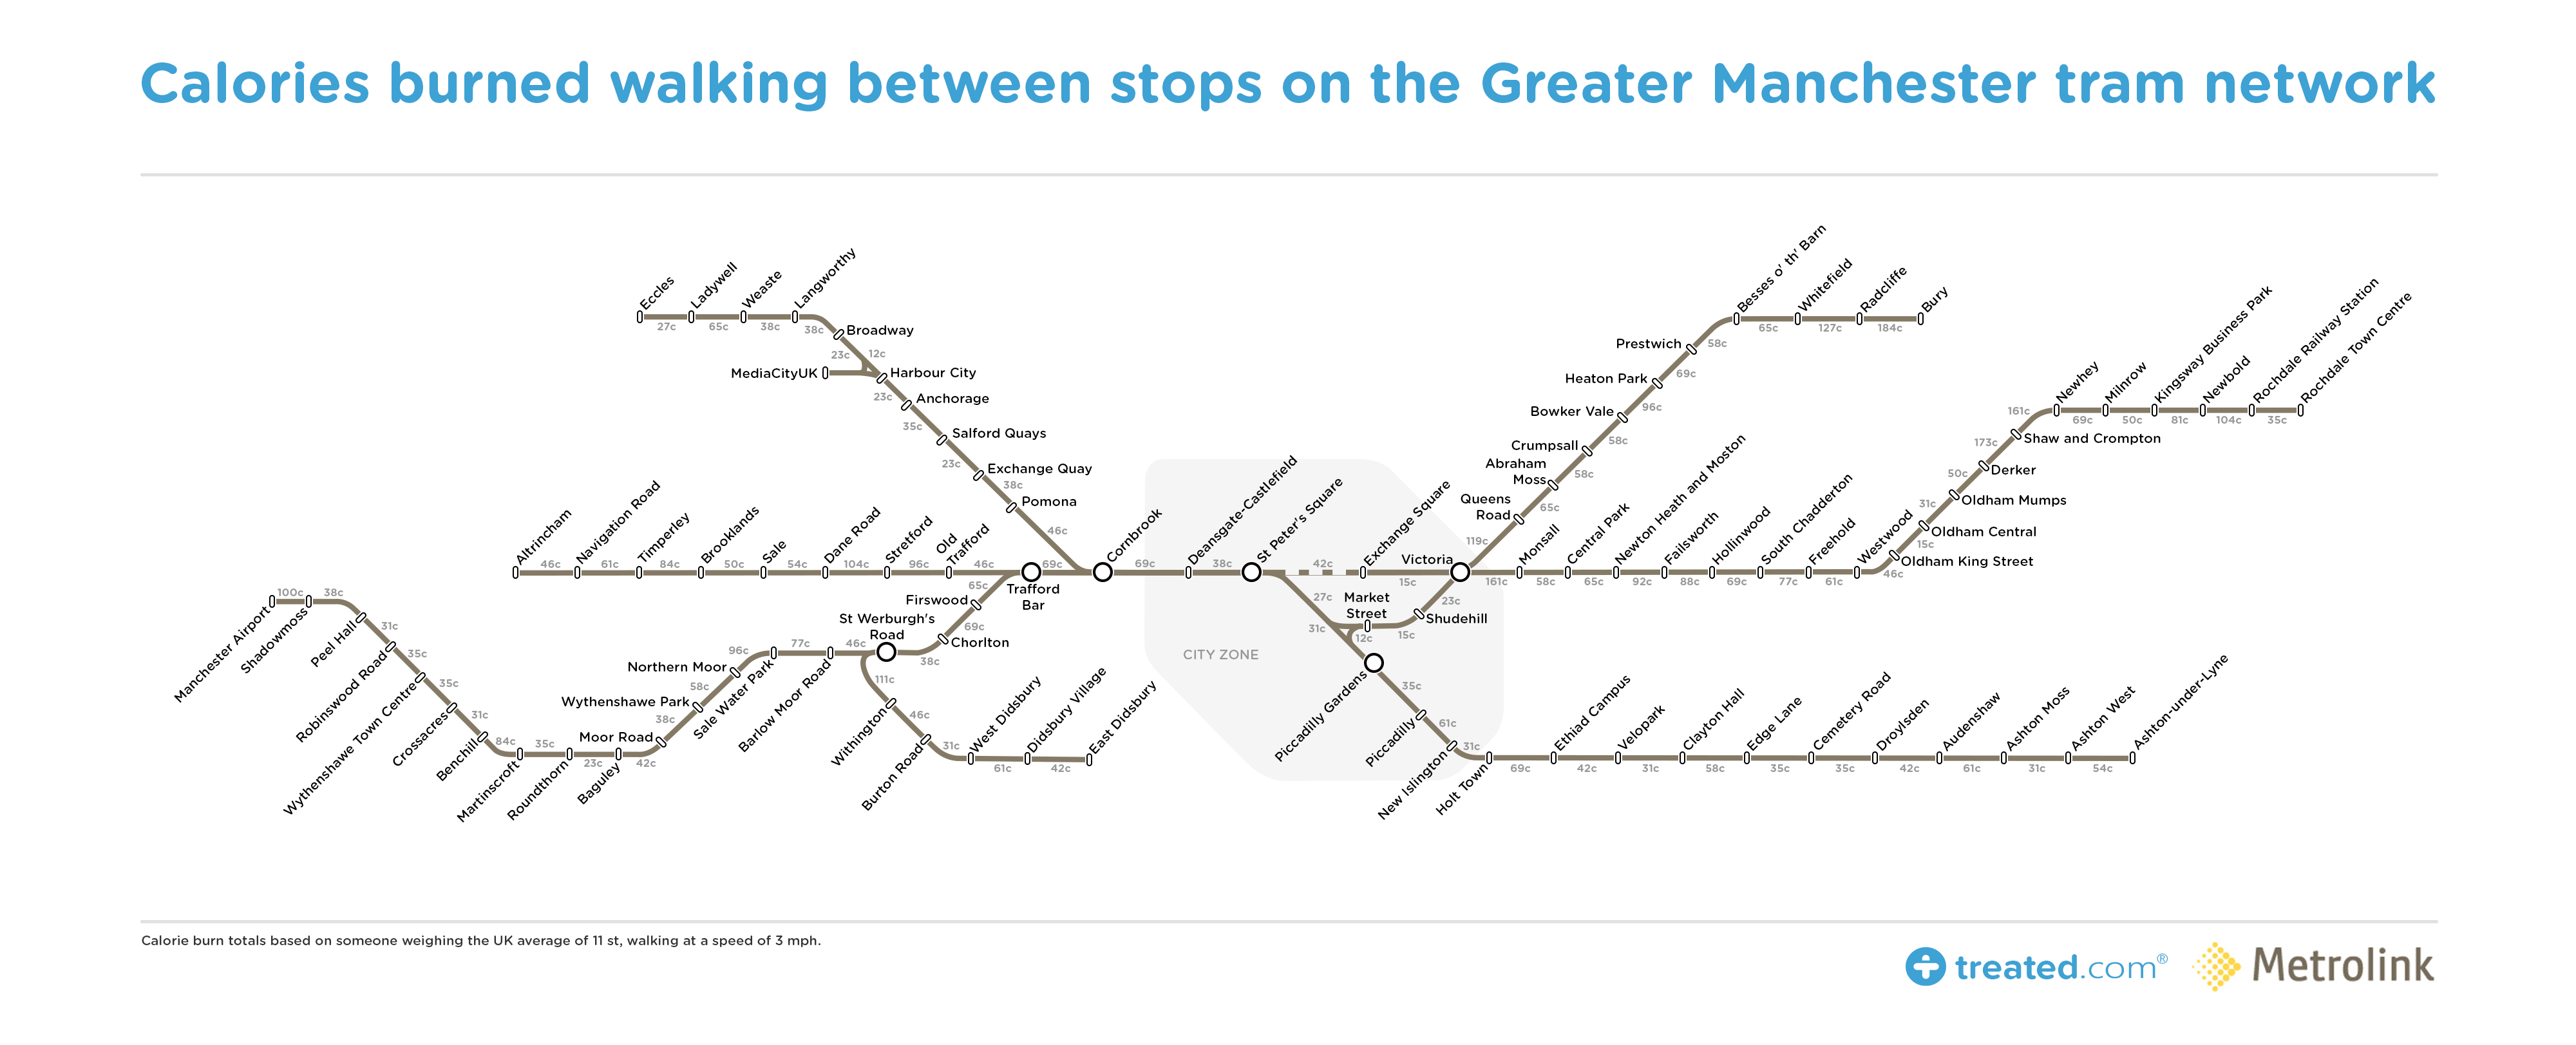 Get Off Early and Get Fit Our Manchester Tram Map of Calories